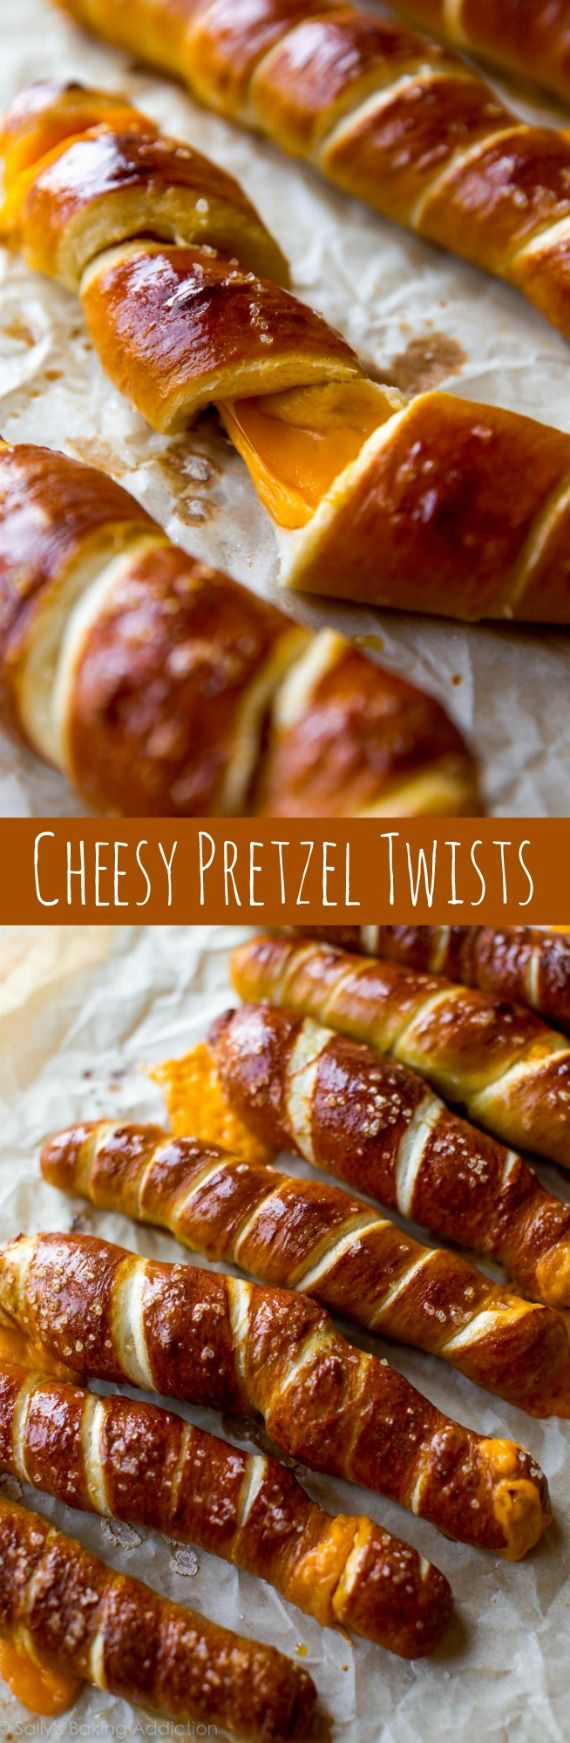 Simple homemade pretzel dough wrapped around cheddar cheese-- so simple yet hit-the-spot delicious! Recipe on sallysbakingaddiction.com